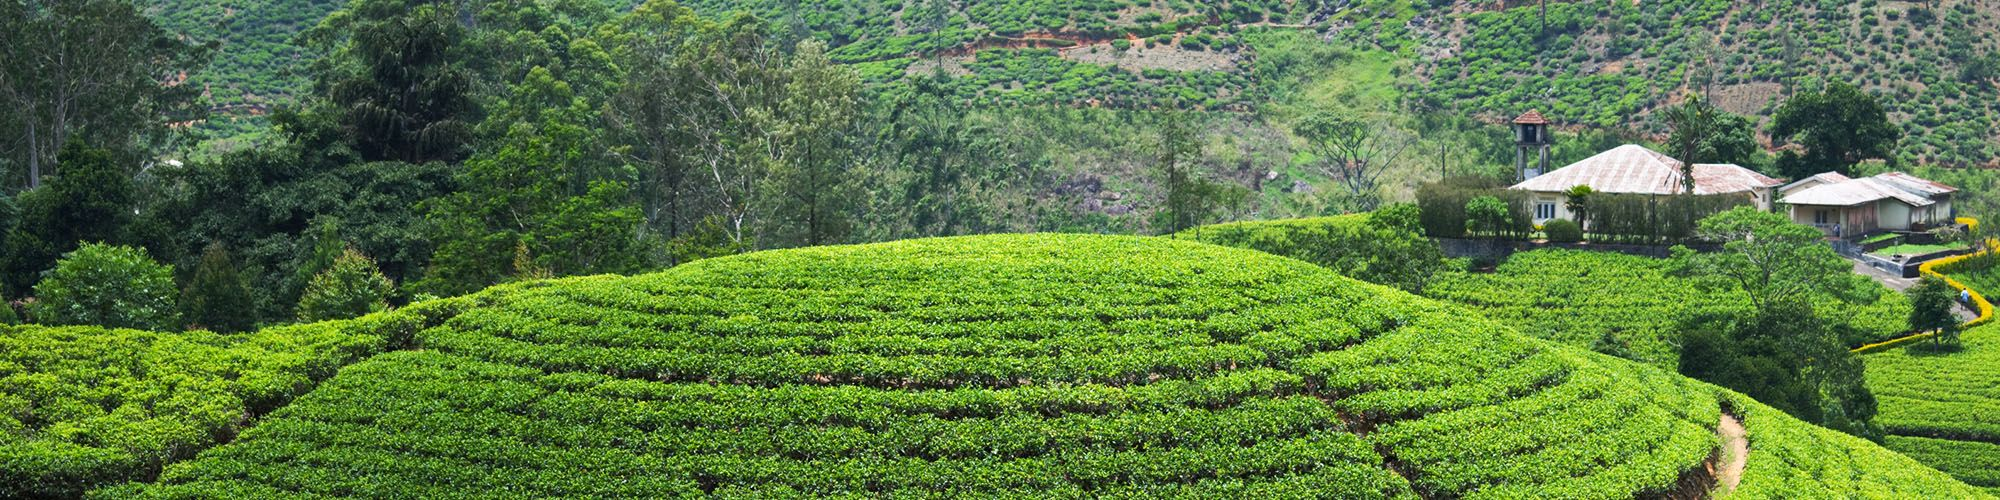 Sri Lanka, Tea estates, Bandarawela